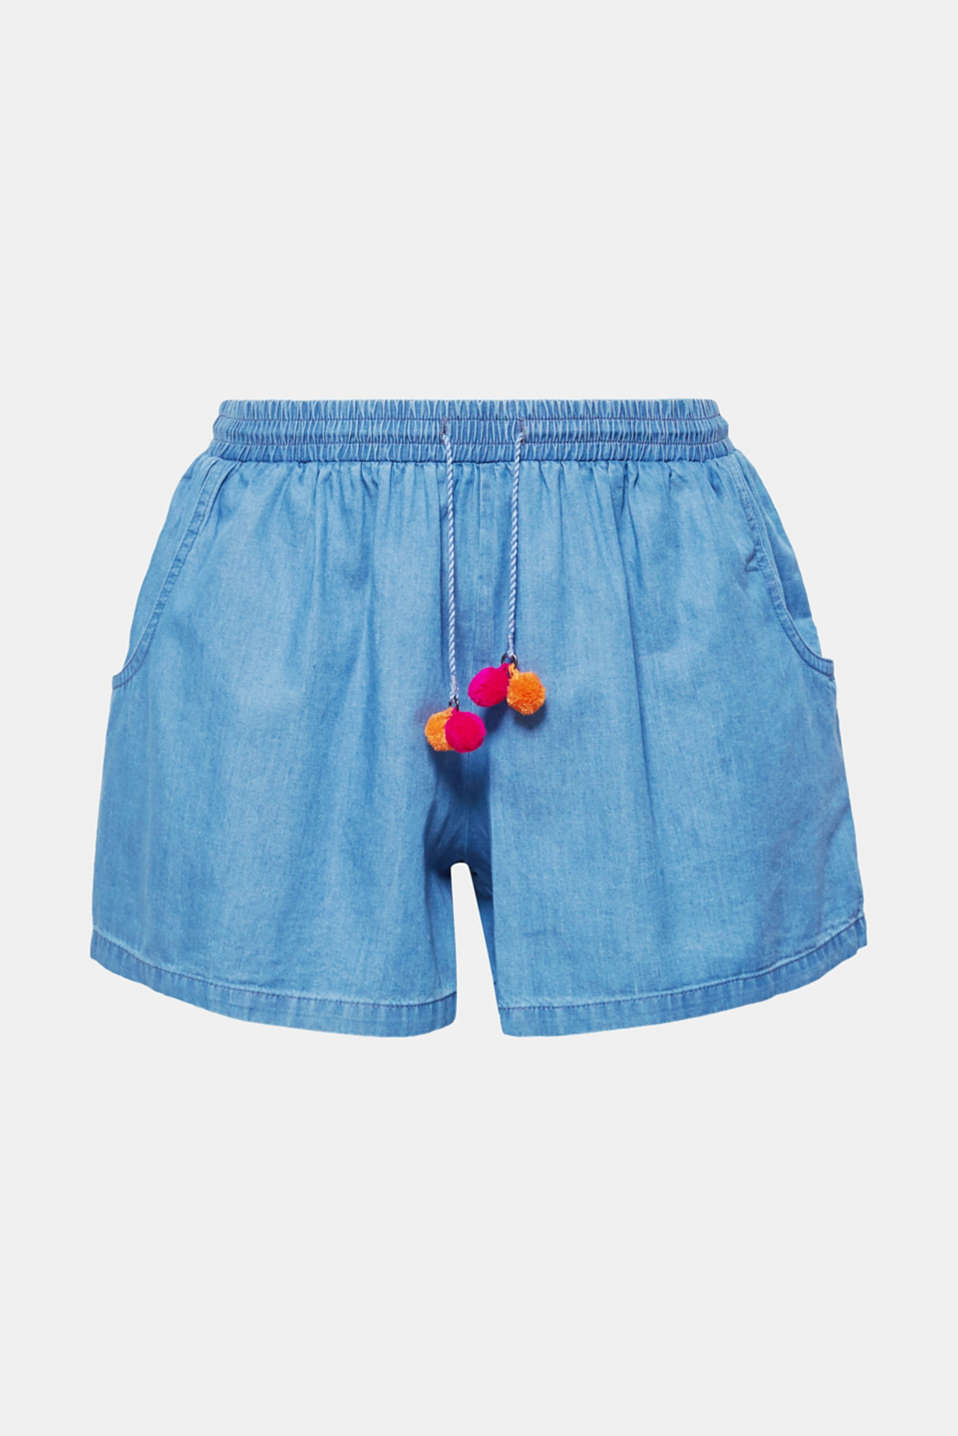 The bright mini pompoms on the waistband give these lightweight denim shorts their feel-good fashionable look!